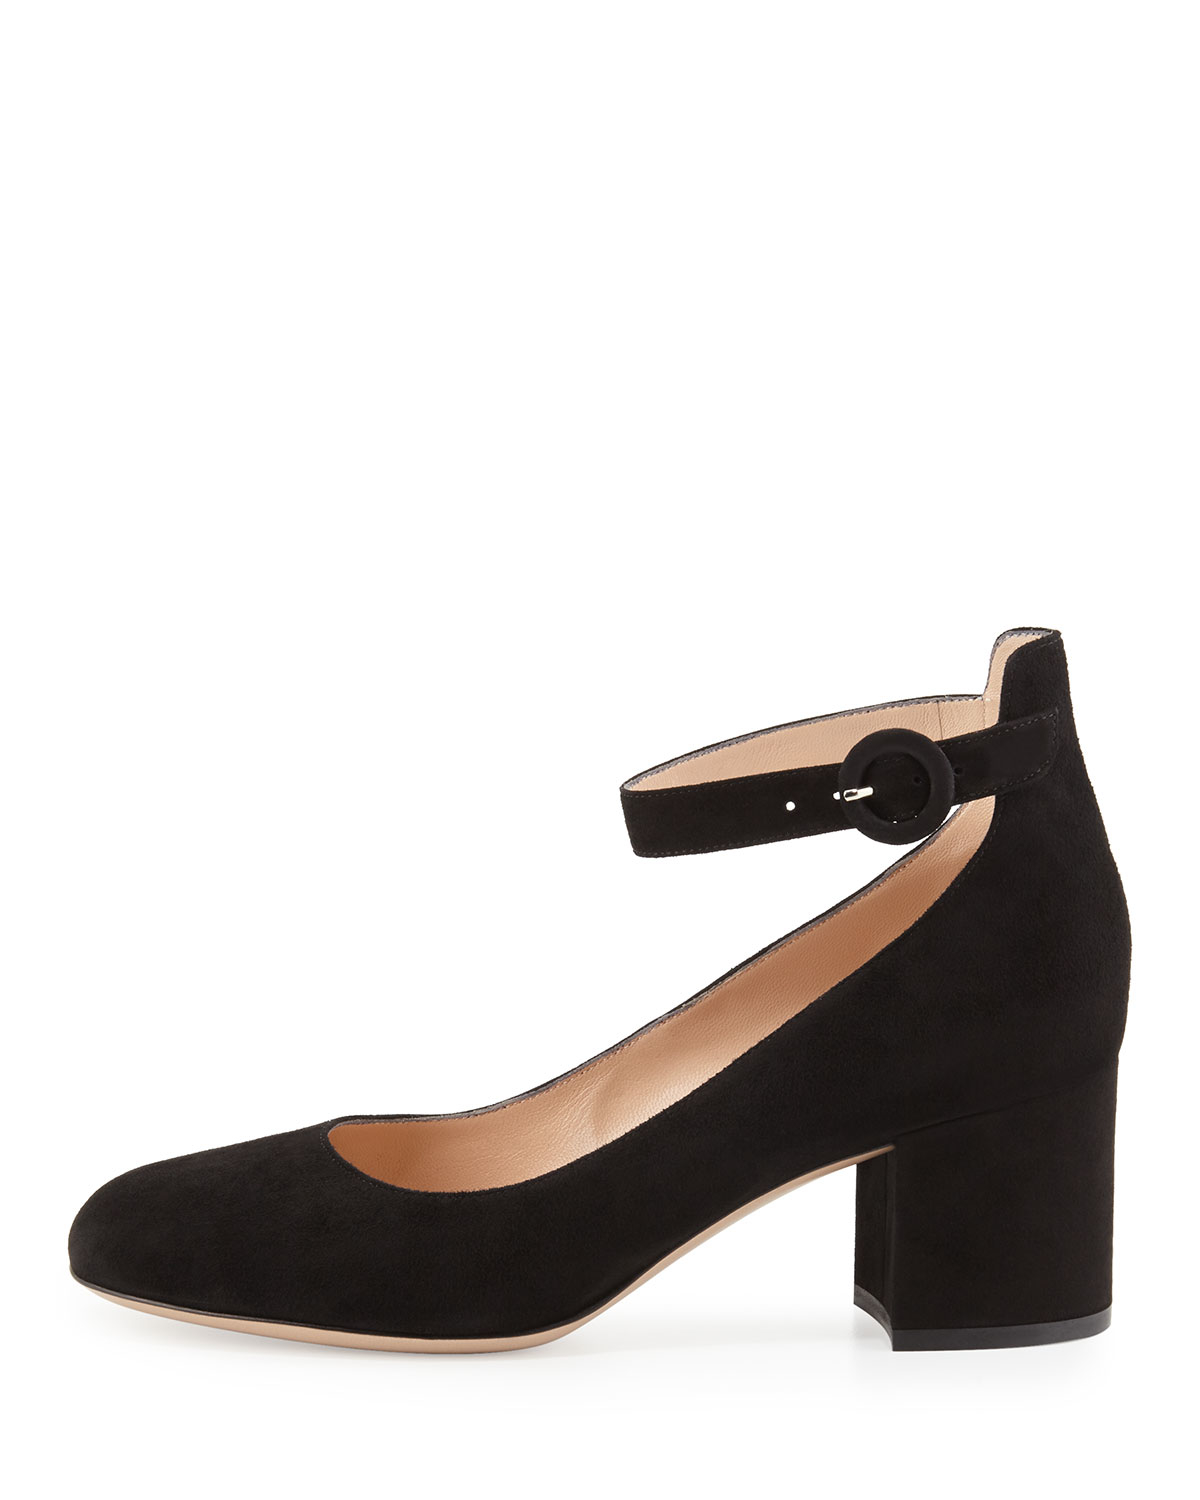 free shipping nicekicks supply for sale Gianvito Rossi block heel ankle strap pumps cZB6x